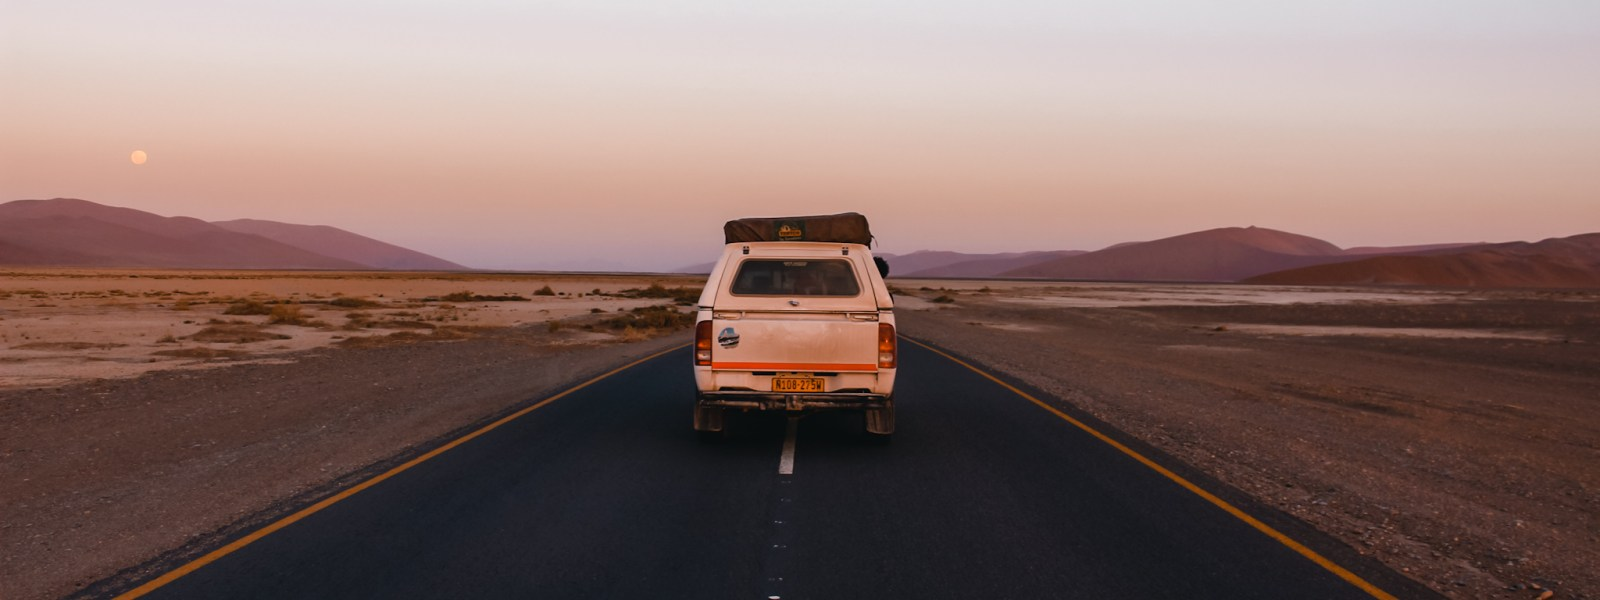 Namibia road trip: 6 most scenic roads in Namibia